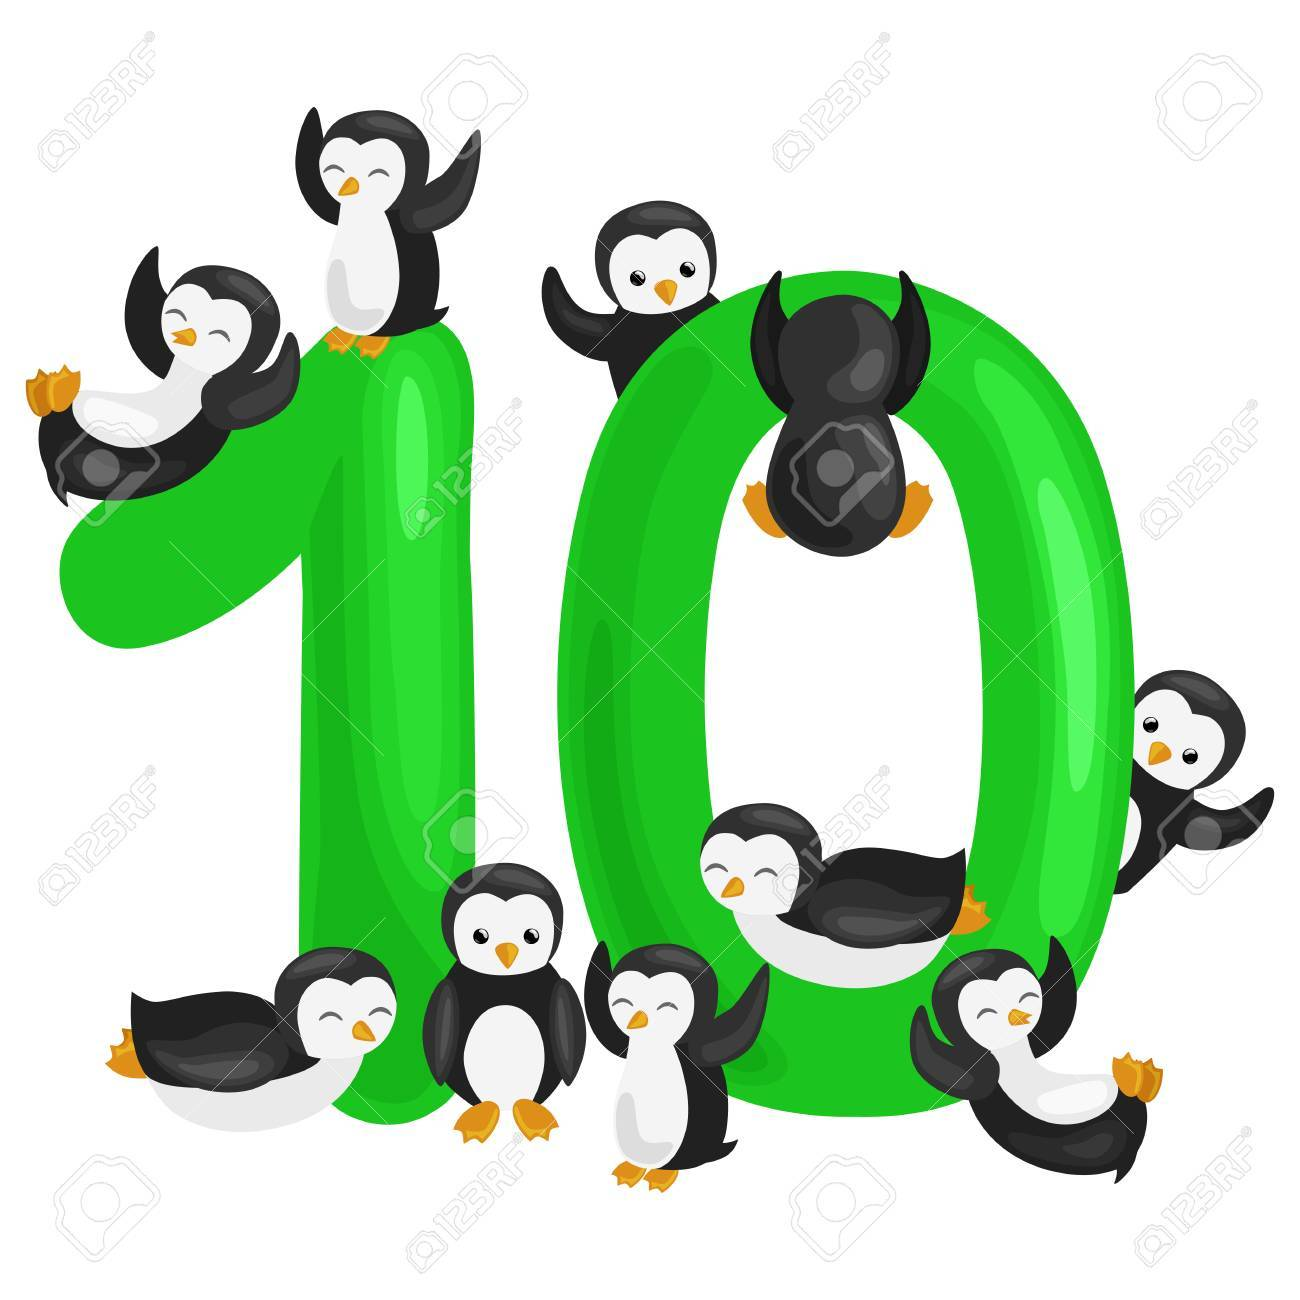 ordinal number 10 for teaching children counting ten penguins